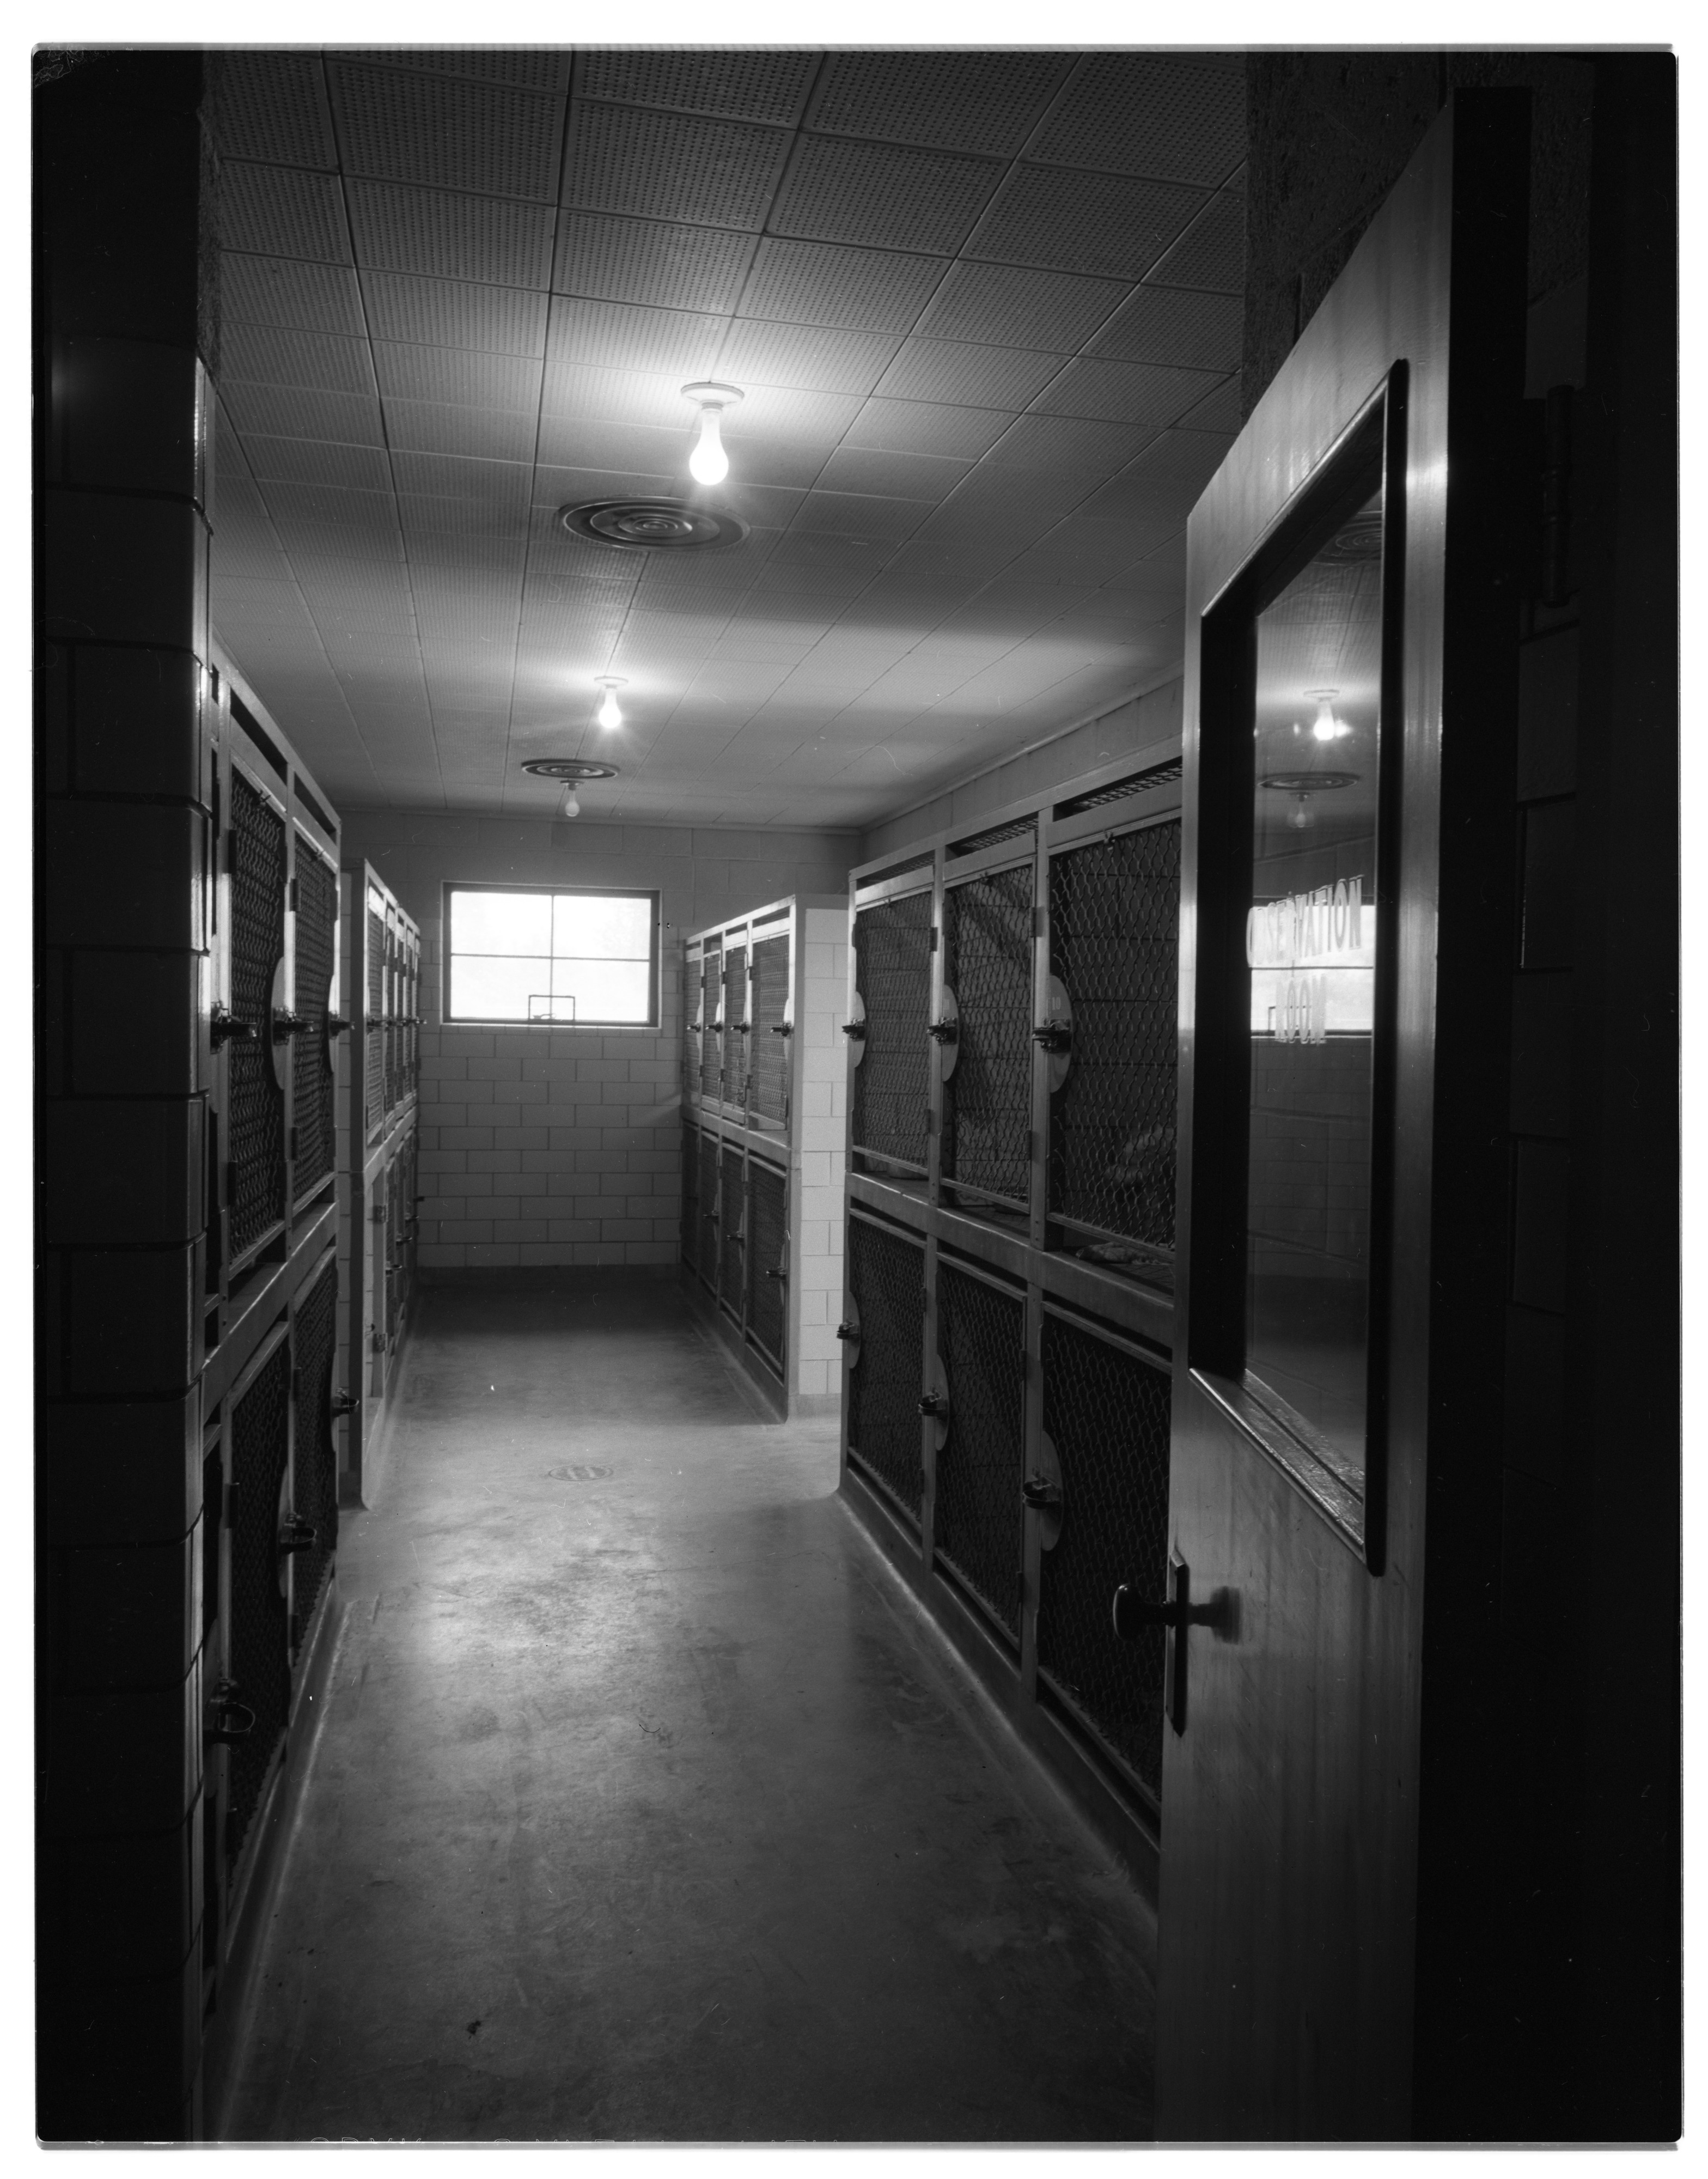 Indoor Cages at Humane Society Shelter, May 1957 image